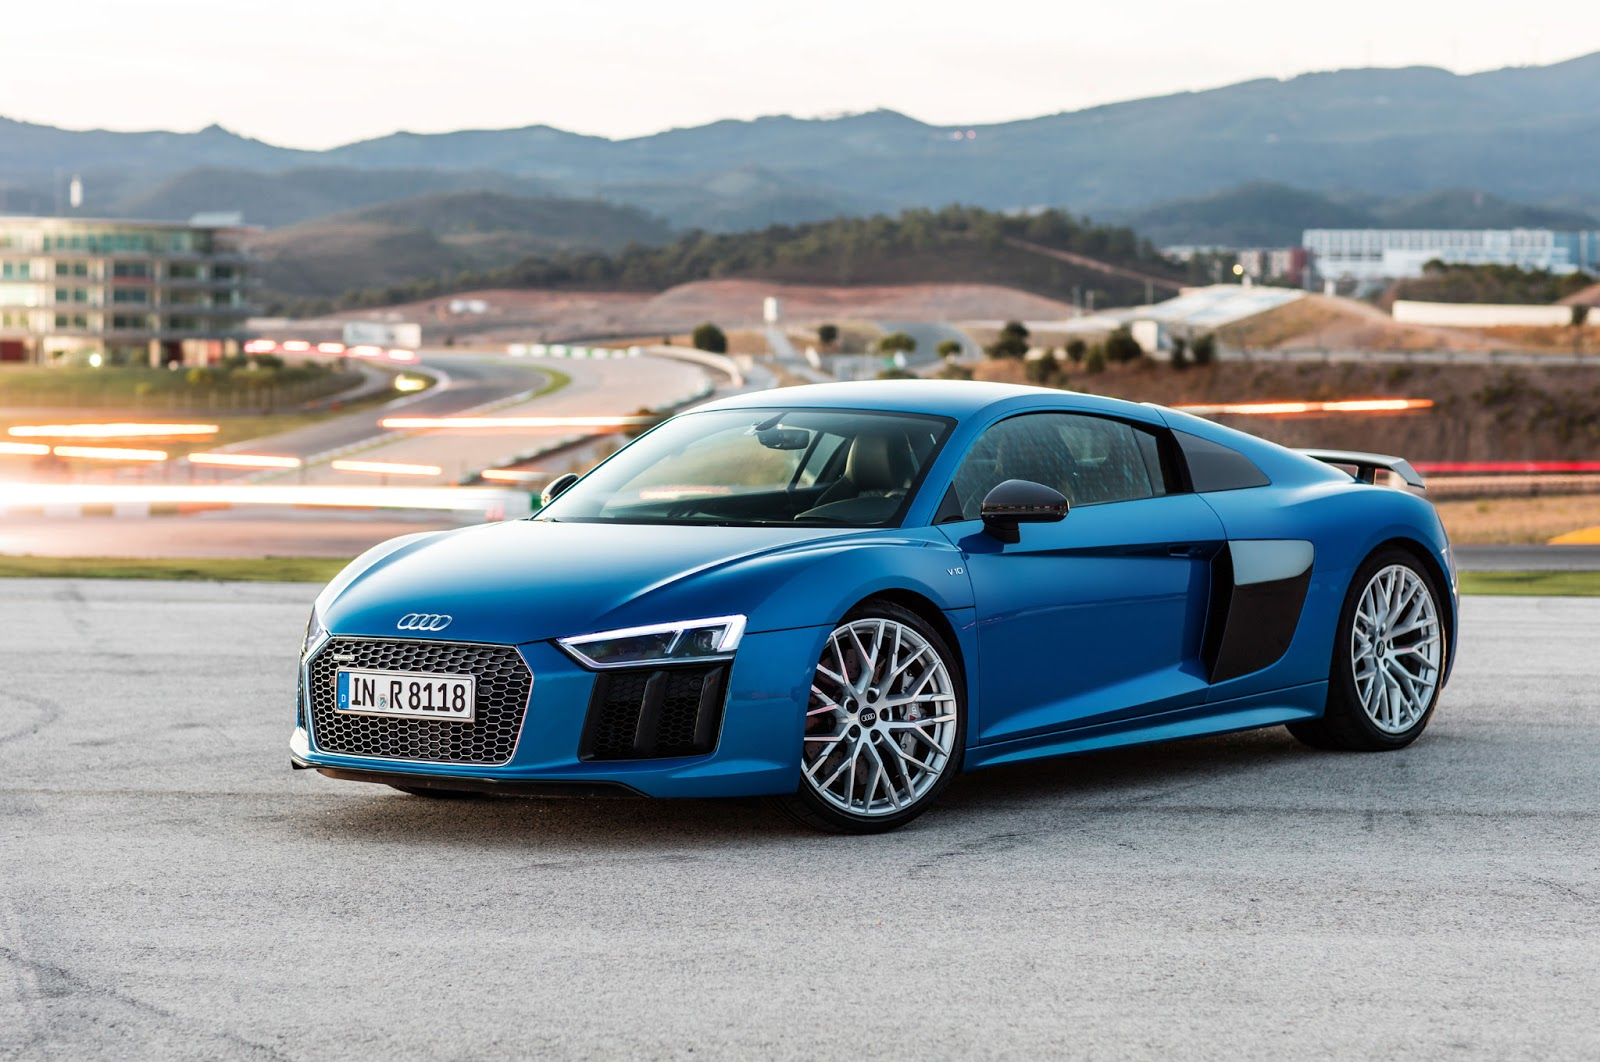 The Ultimate List Of Exotic Supercars The Elite Buzz - Audi sports car list